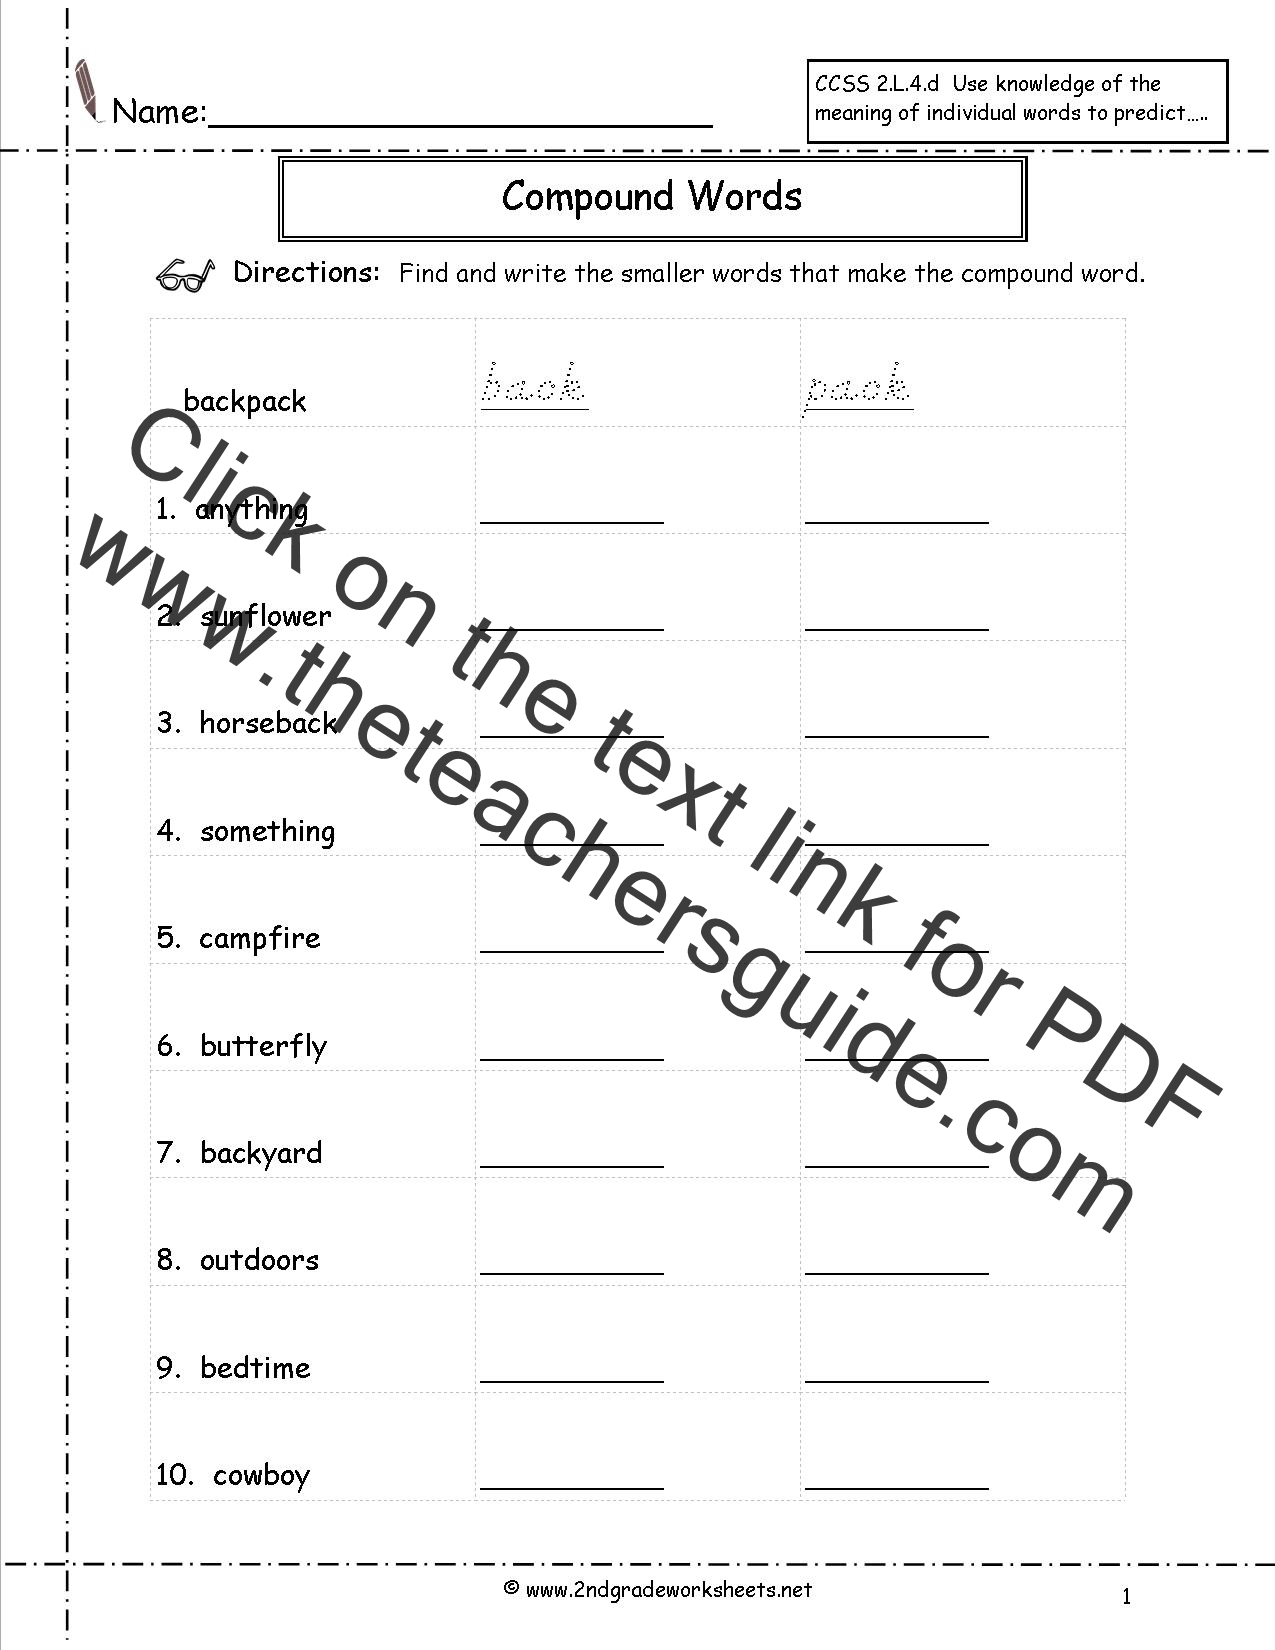 Worksheets Second Grade Printable Worksheets free languagegrammar worksheets and printouts compound words worksheets